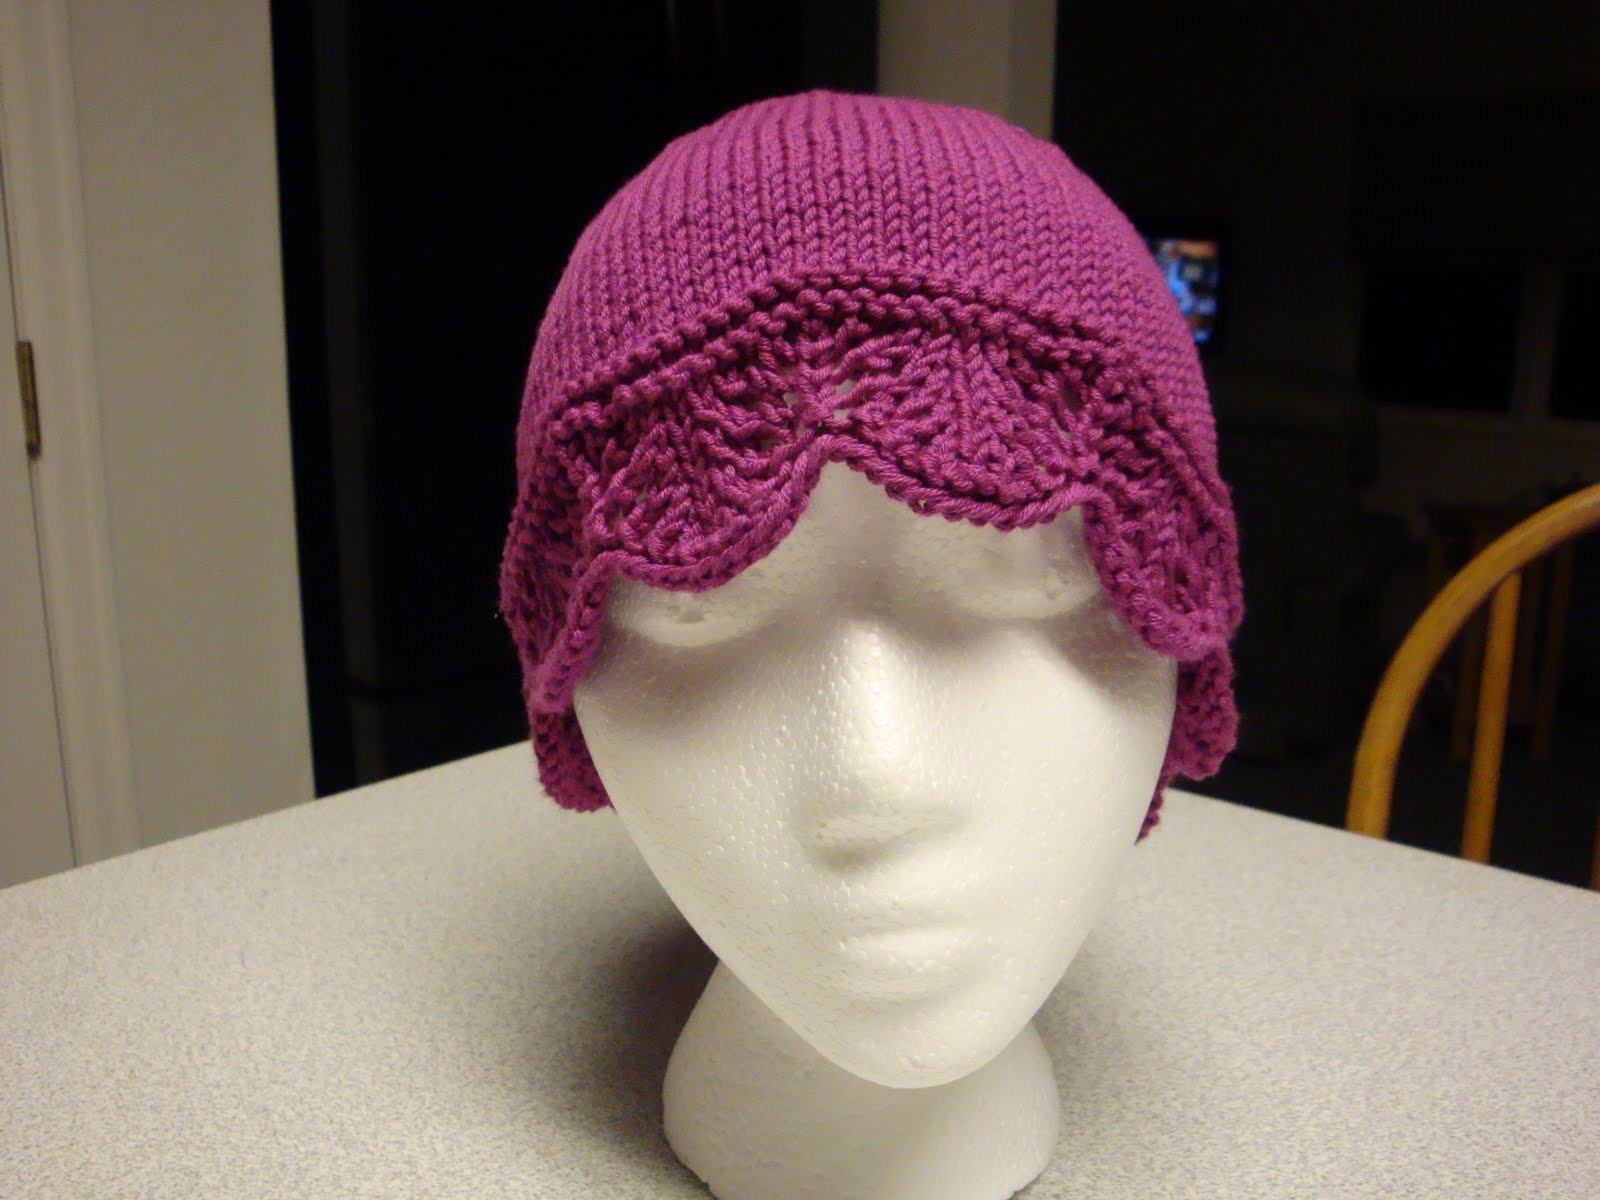 Awesome Chemo Cap Knitting Pattern Design Patterns Knitted Chemo Hat Patterns Of Charming 49 Photos Knitted Chemo Hat Patterns